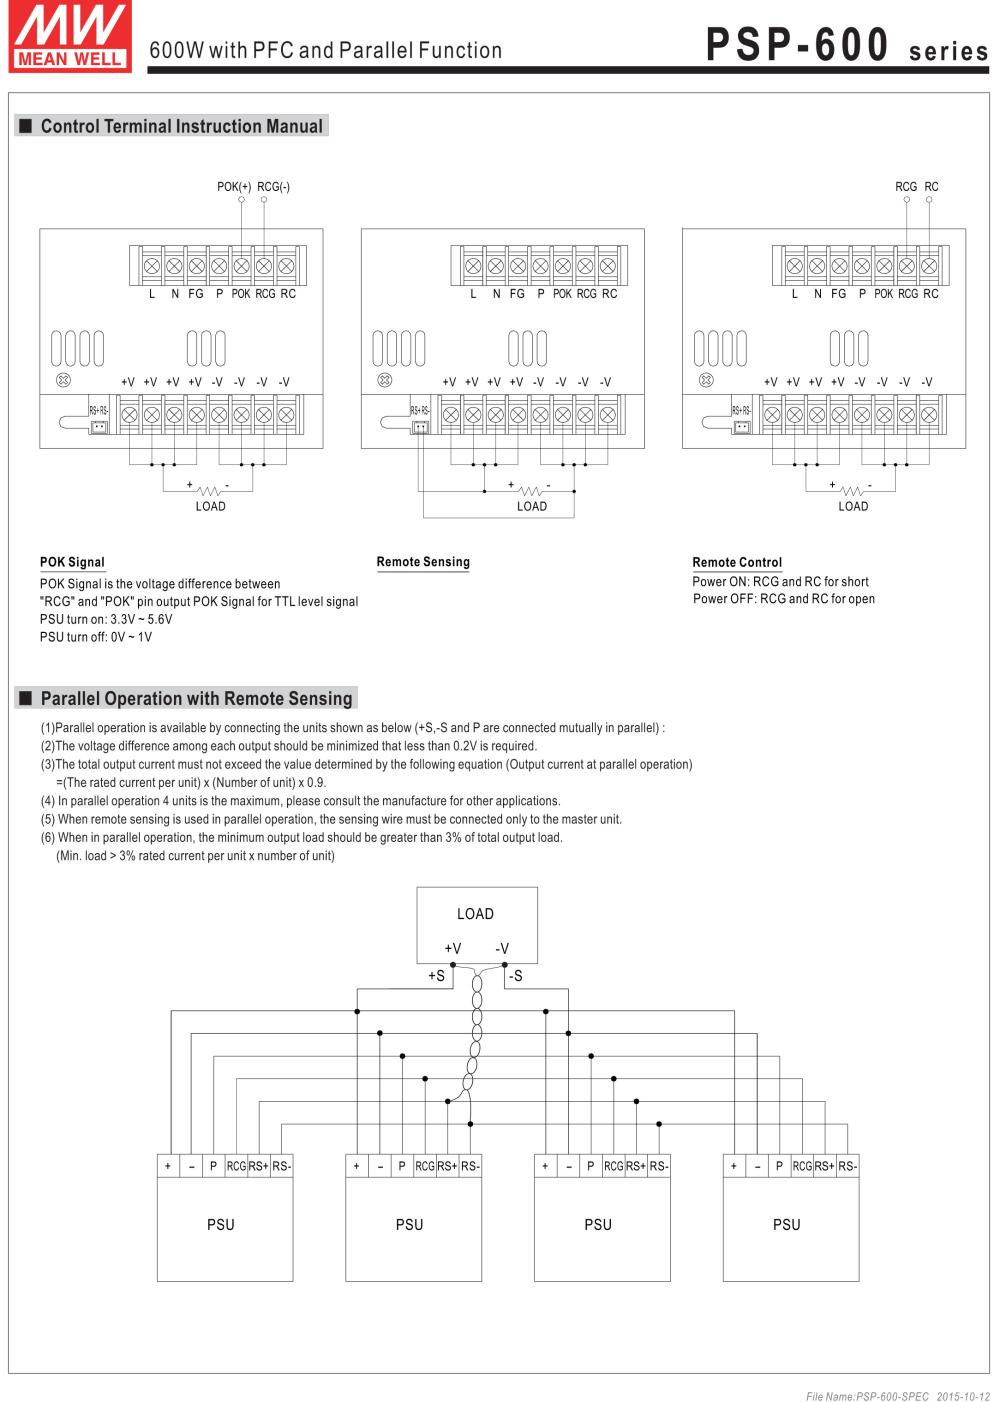 Mean Well Original PSP-600-27 with PFC and Parallel Function Power ...